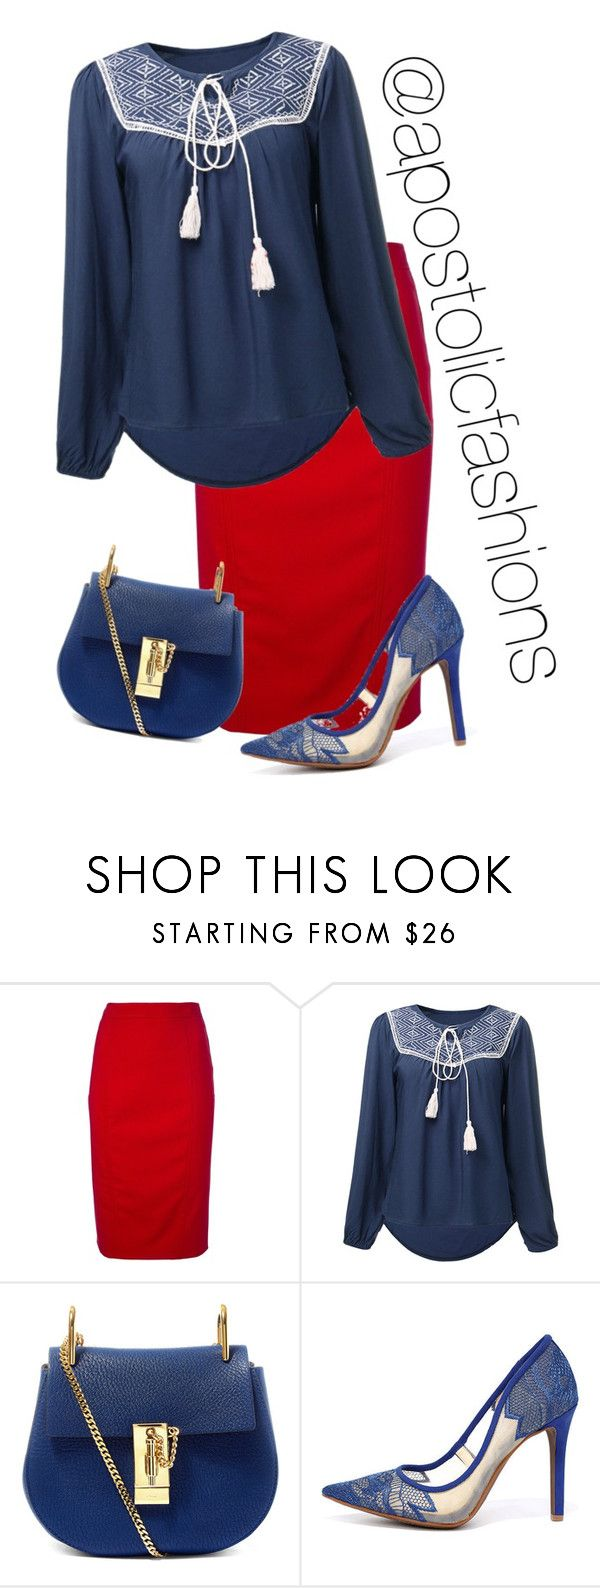 """""""Apostolic Fashions #1398"""" by apostolicfashions ❤ liked on Polyvore featuring Valentino, Chloé, Jessica Simpson, modestlykay and modestlywhit"""